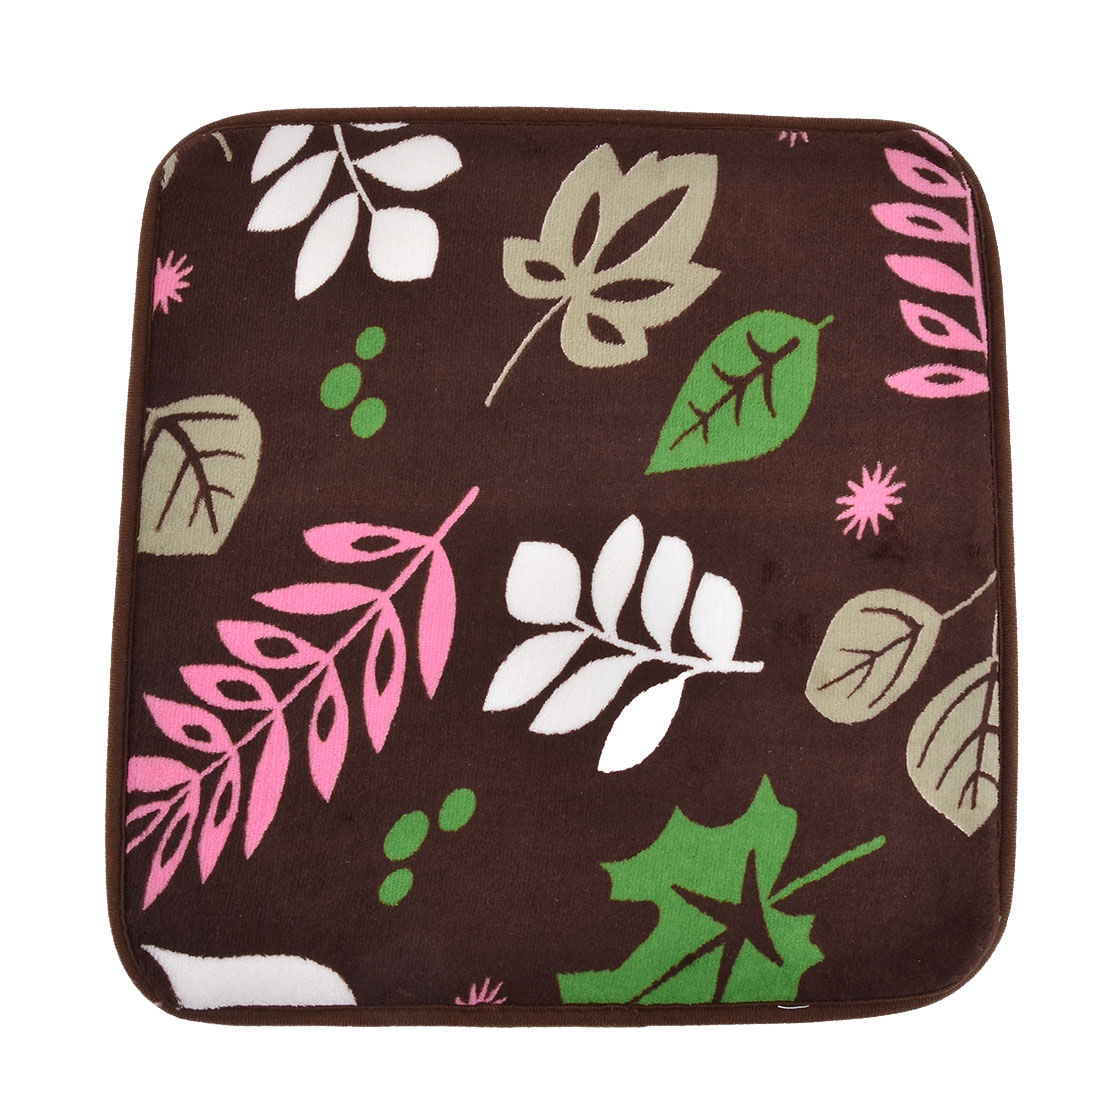 Household Office Coral Velvet Leaf Pattern Soft Chair Seat Decor Pad Cushion 41cm x 40cm